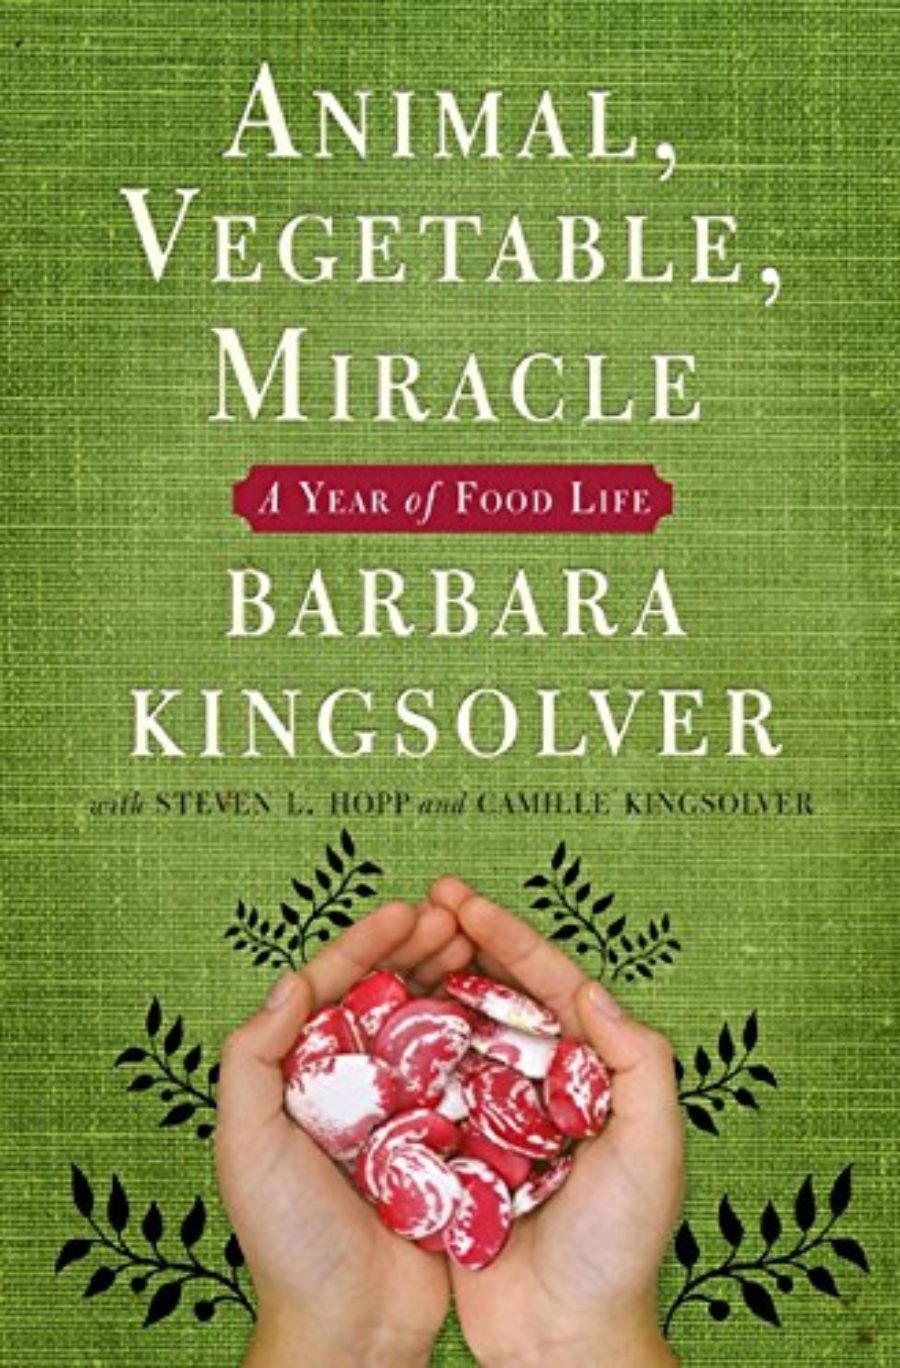 Cover of Animal, Vegetable, Miracle: A Year of Food Life